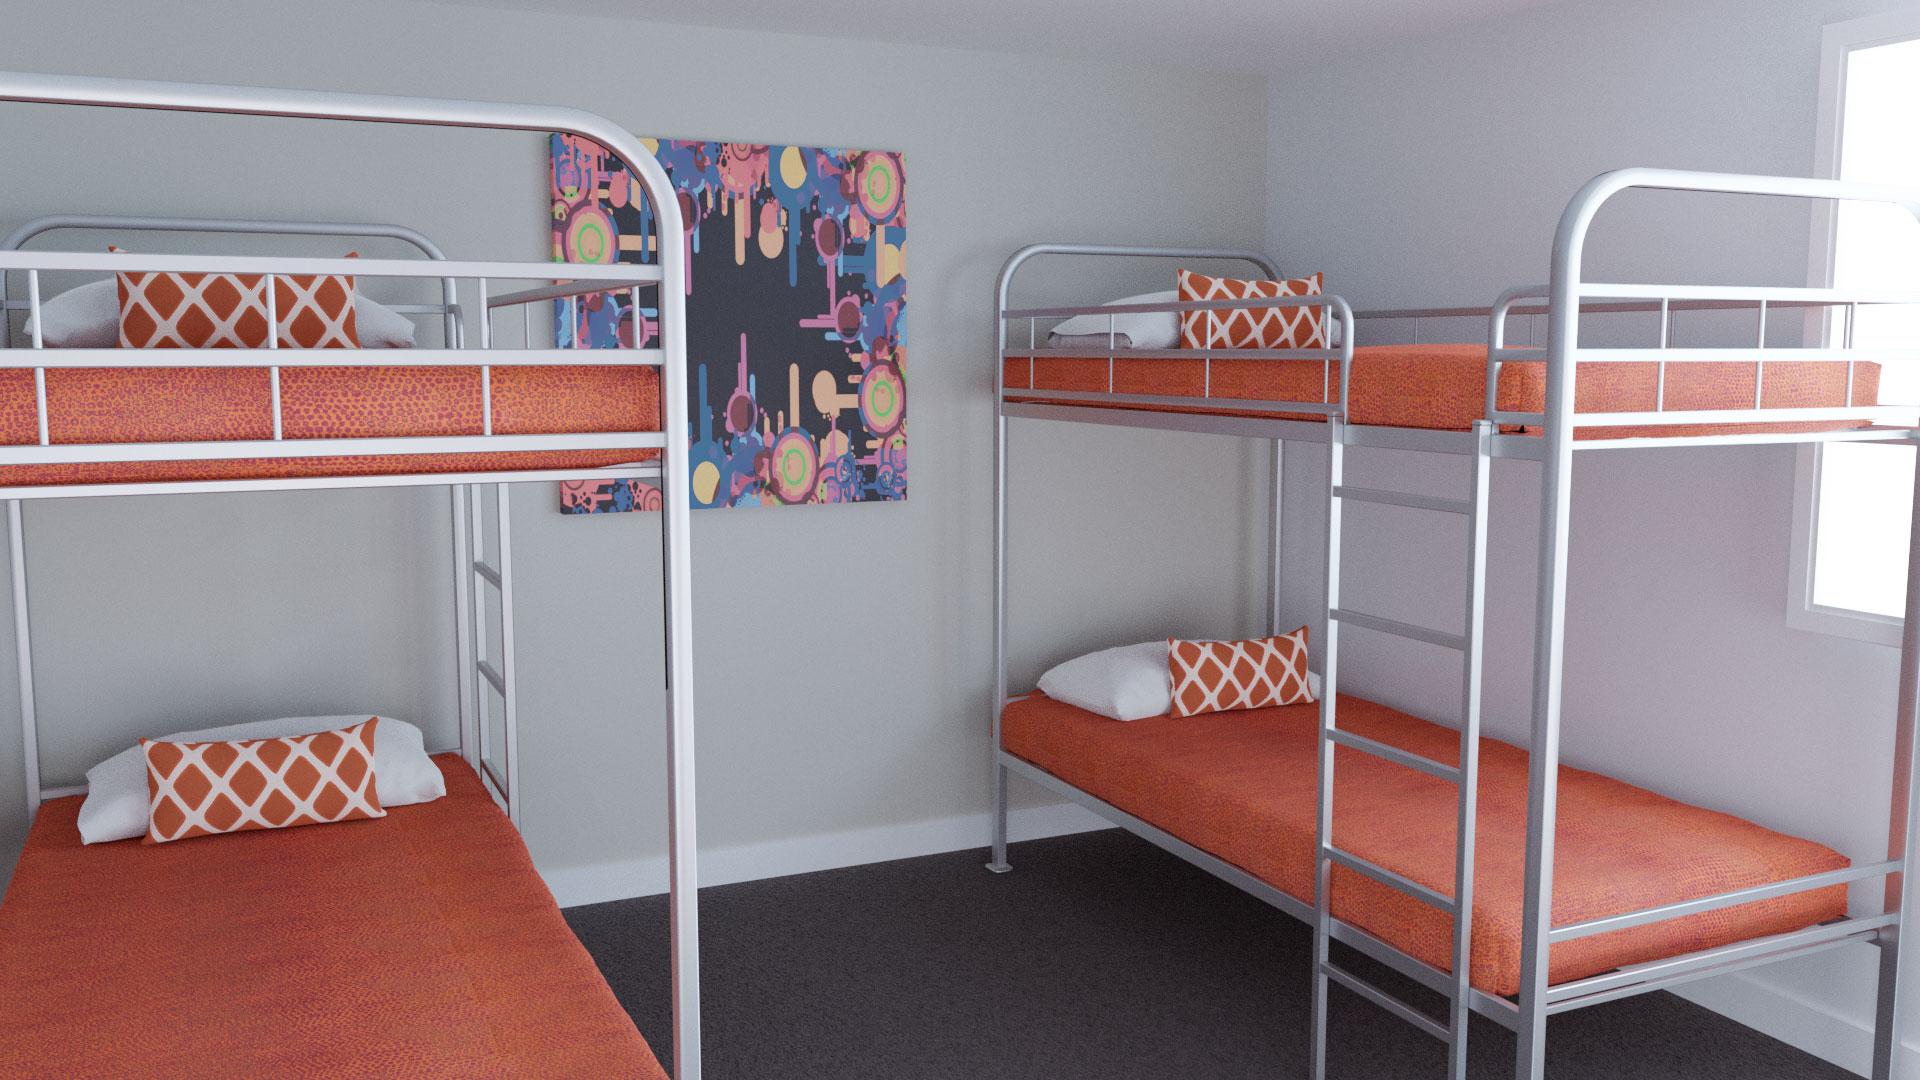 Cabin bunk beds covevered with Bunk Covers using Rattler Reverse Tango Fabric, Breakfast Cushions using Gem Orange fabric